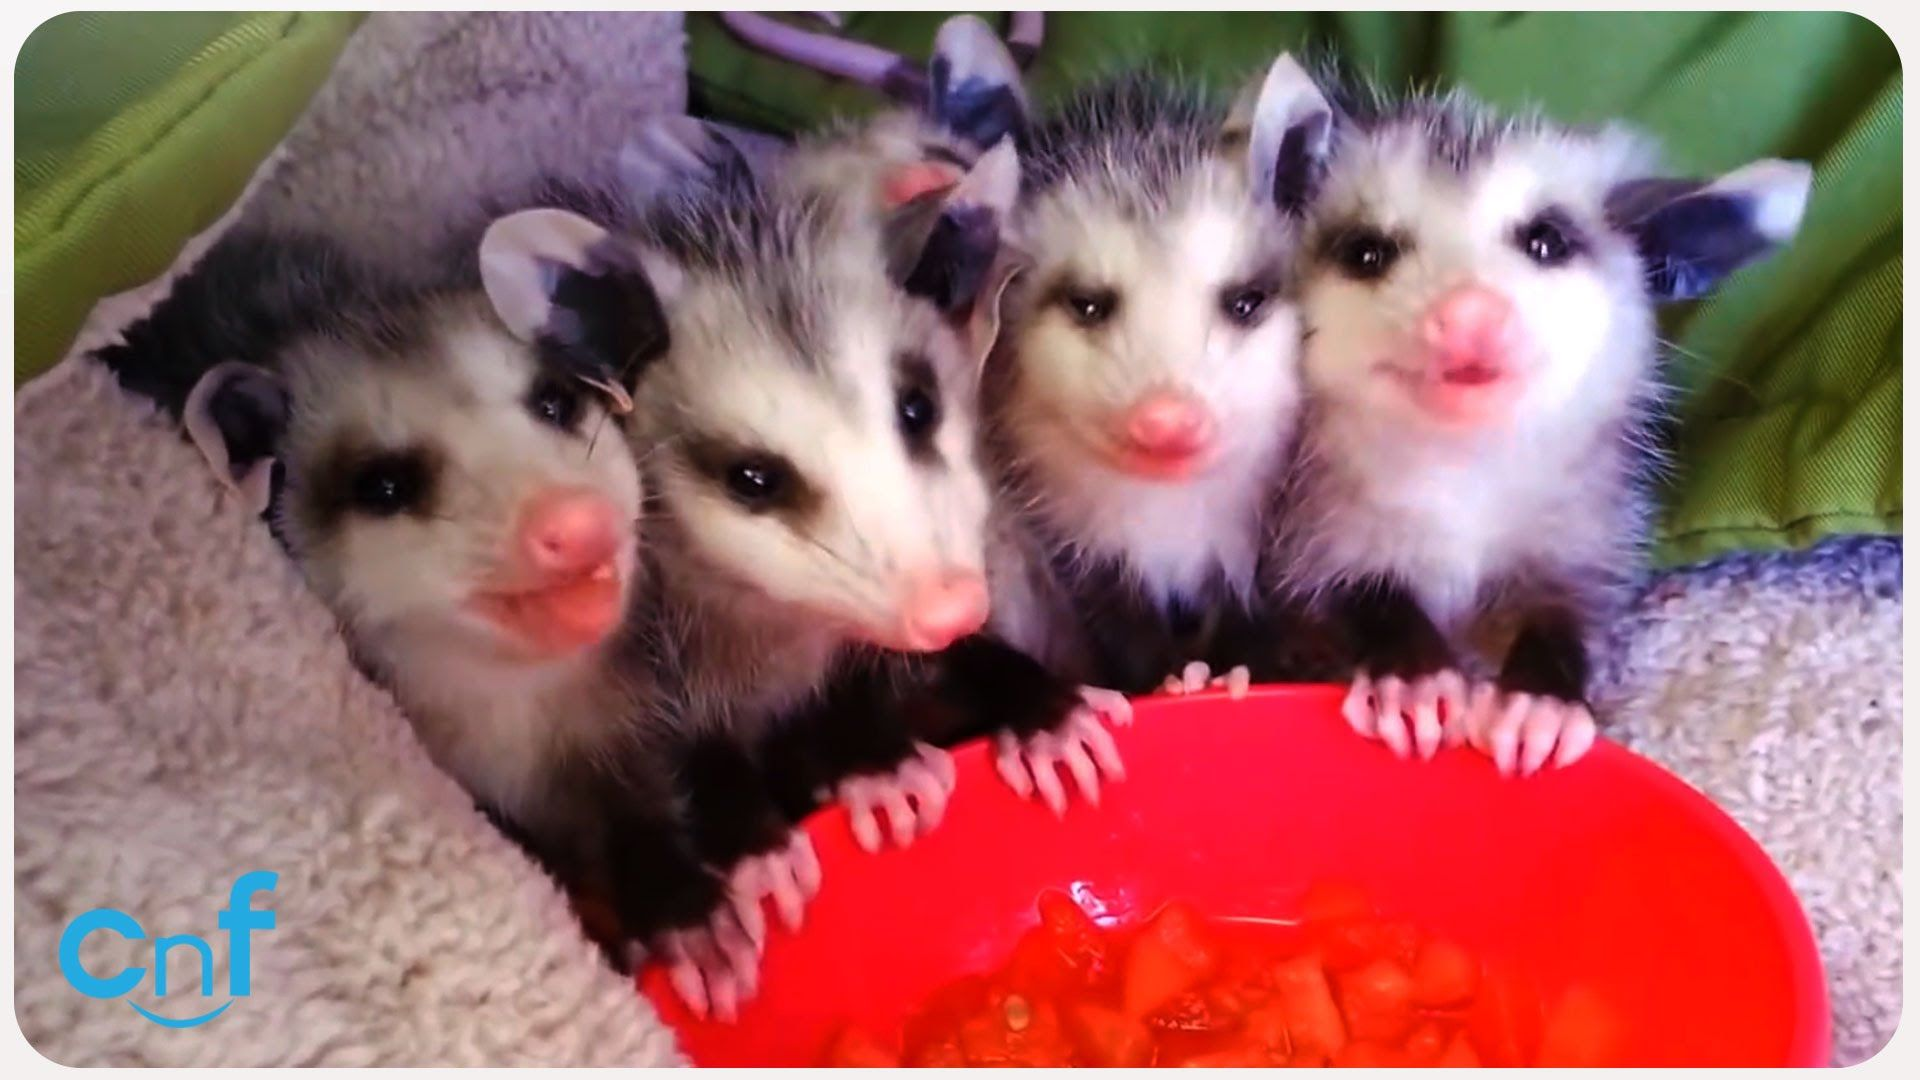 Baby Possums Eat Watermelon Possums.....Love Them All